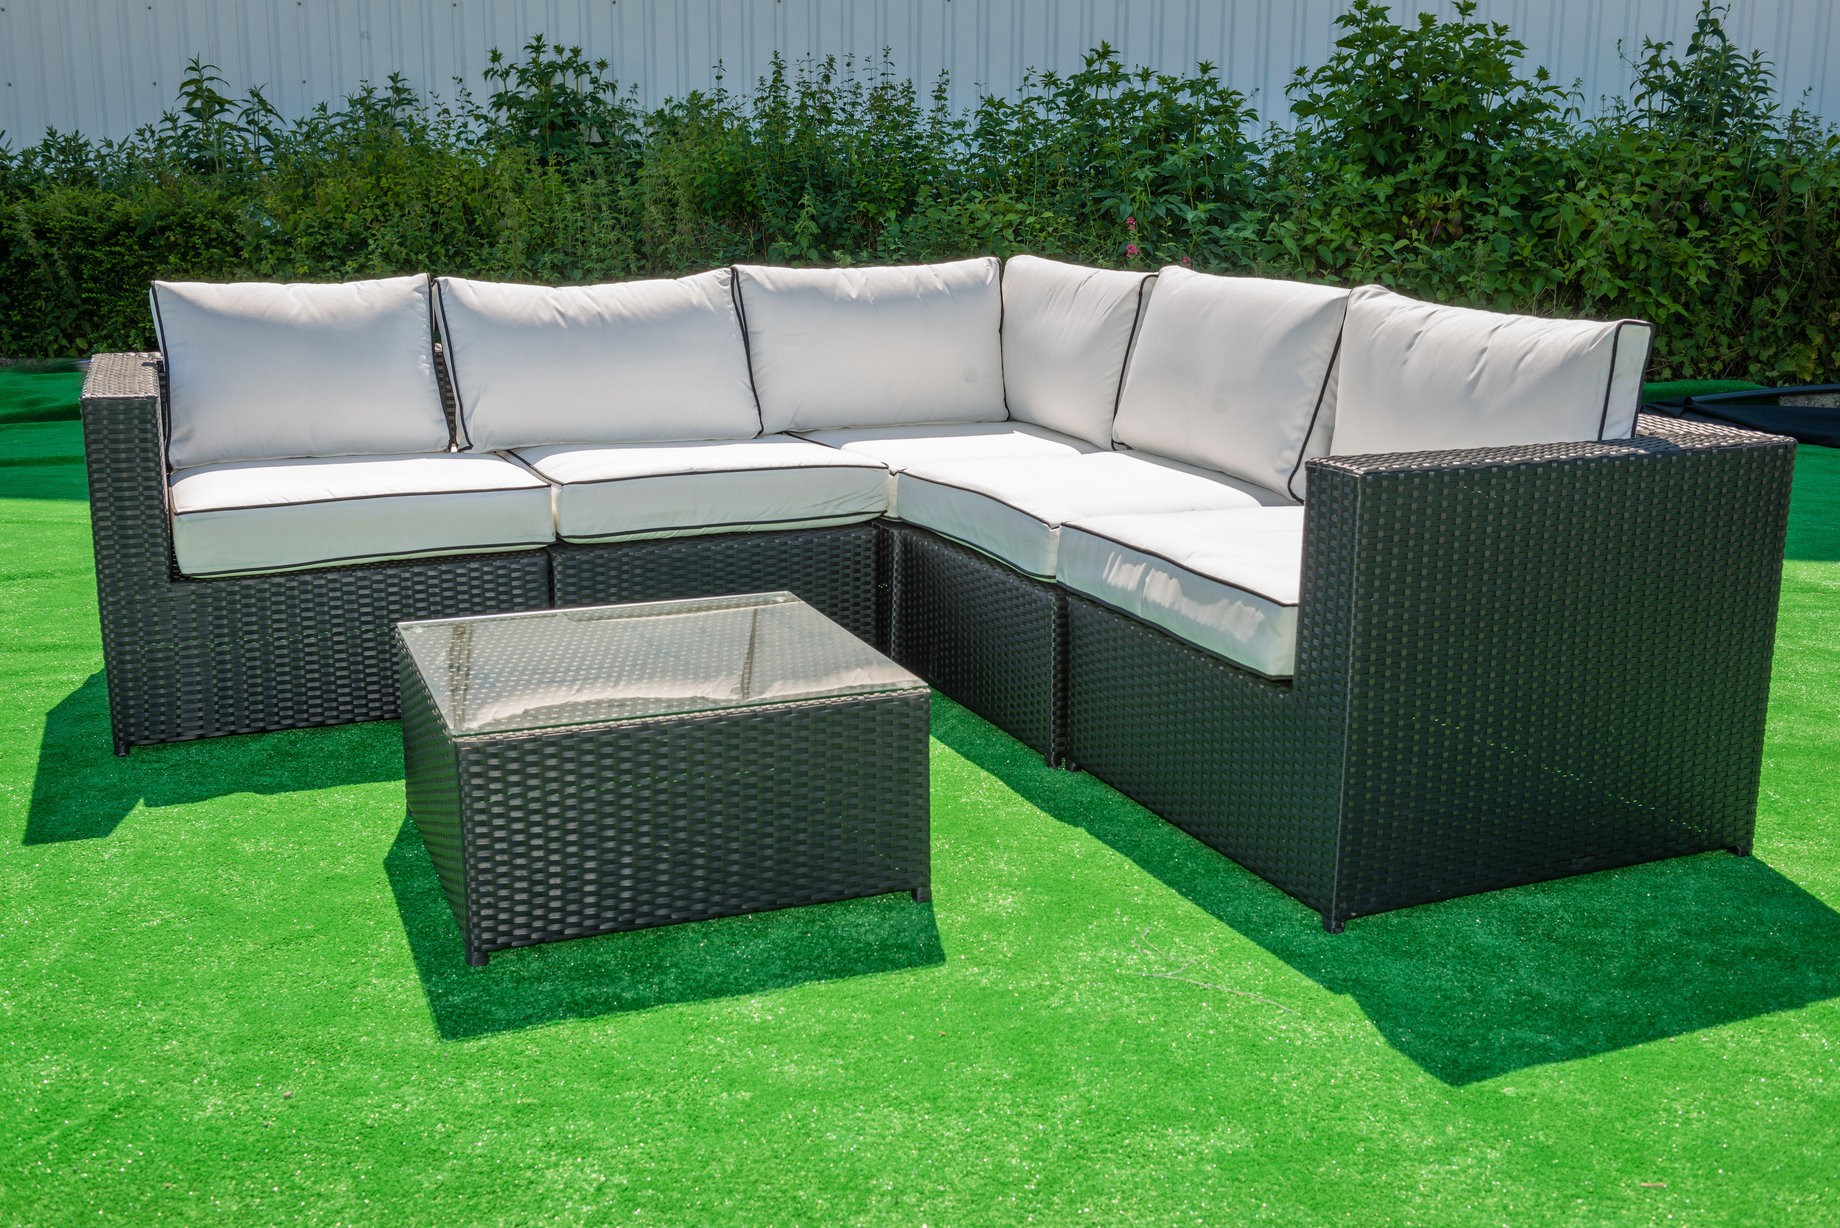 Rattan Corner Units Perfect For Summer Relaxation